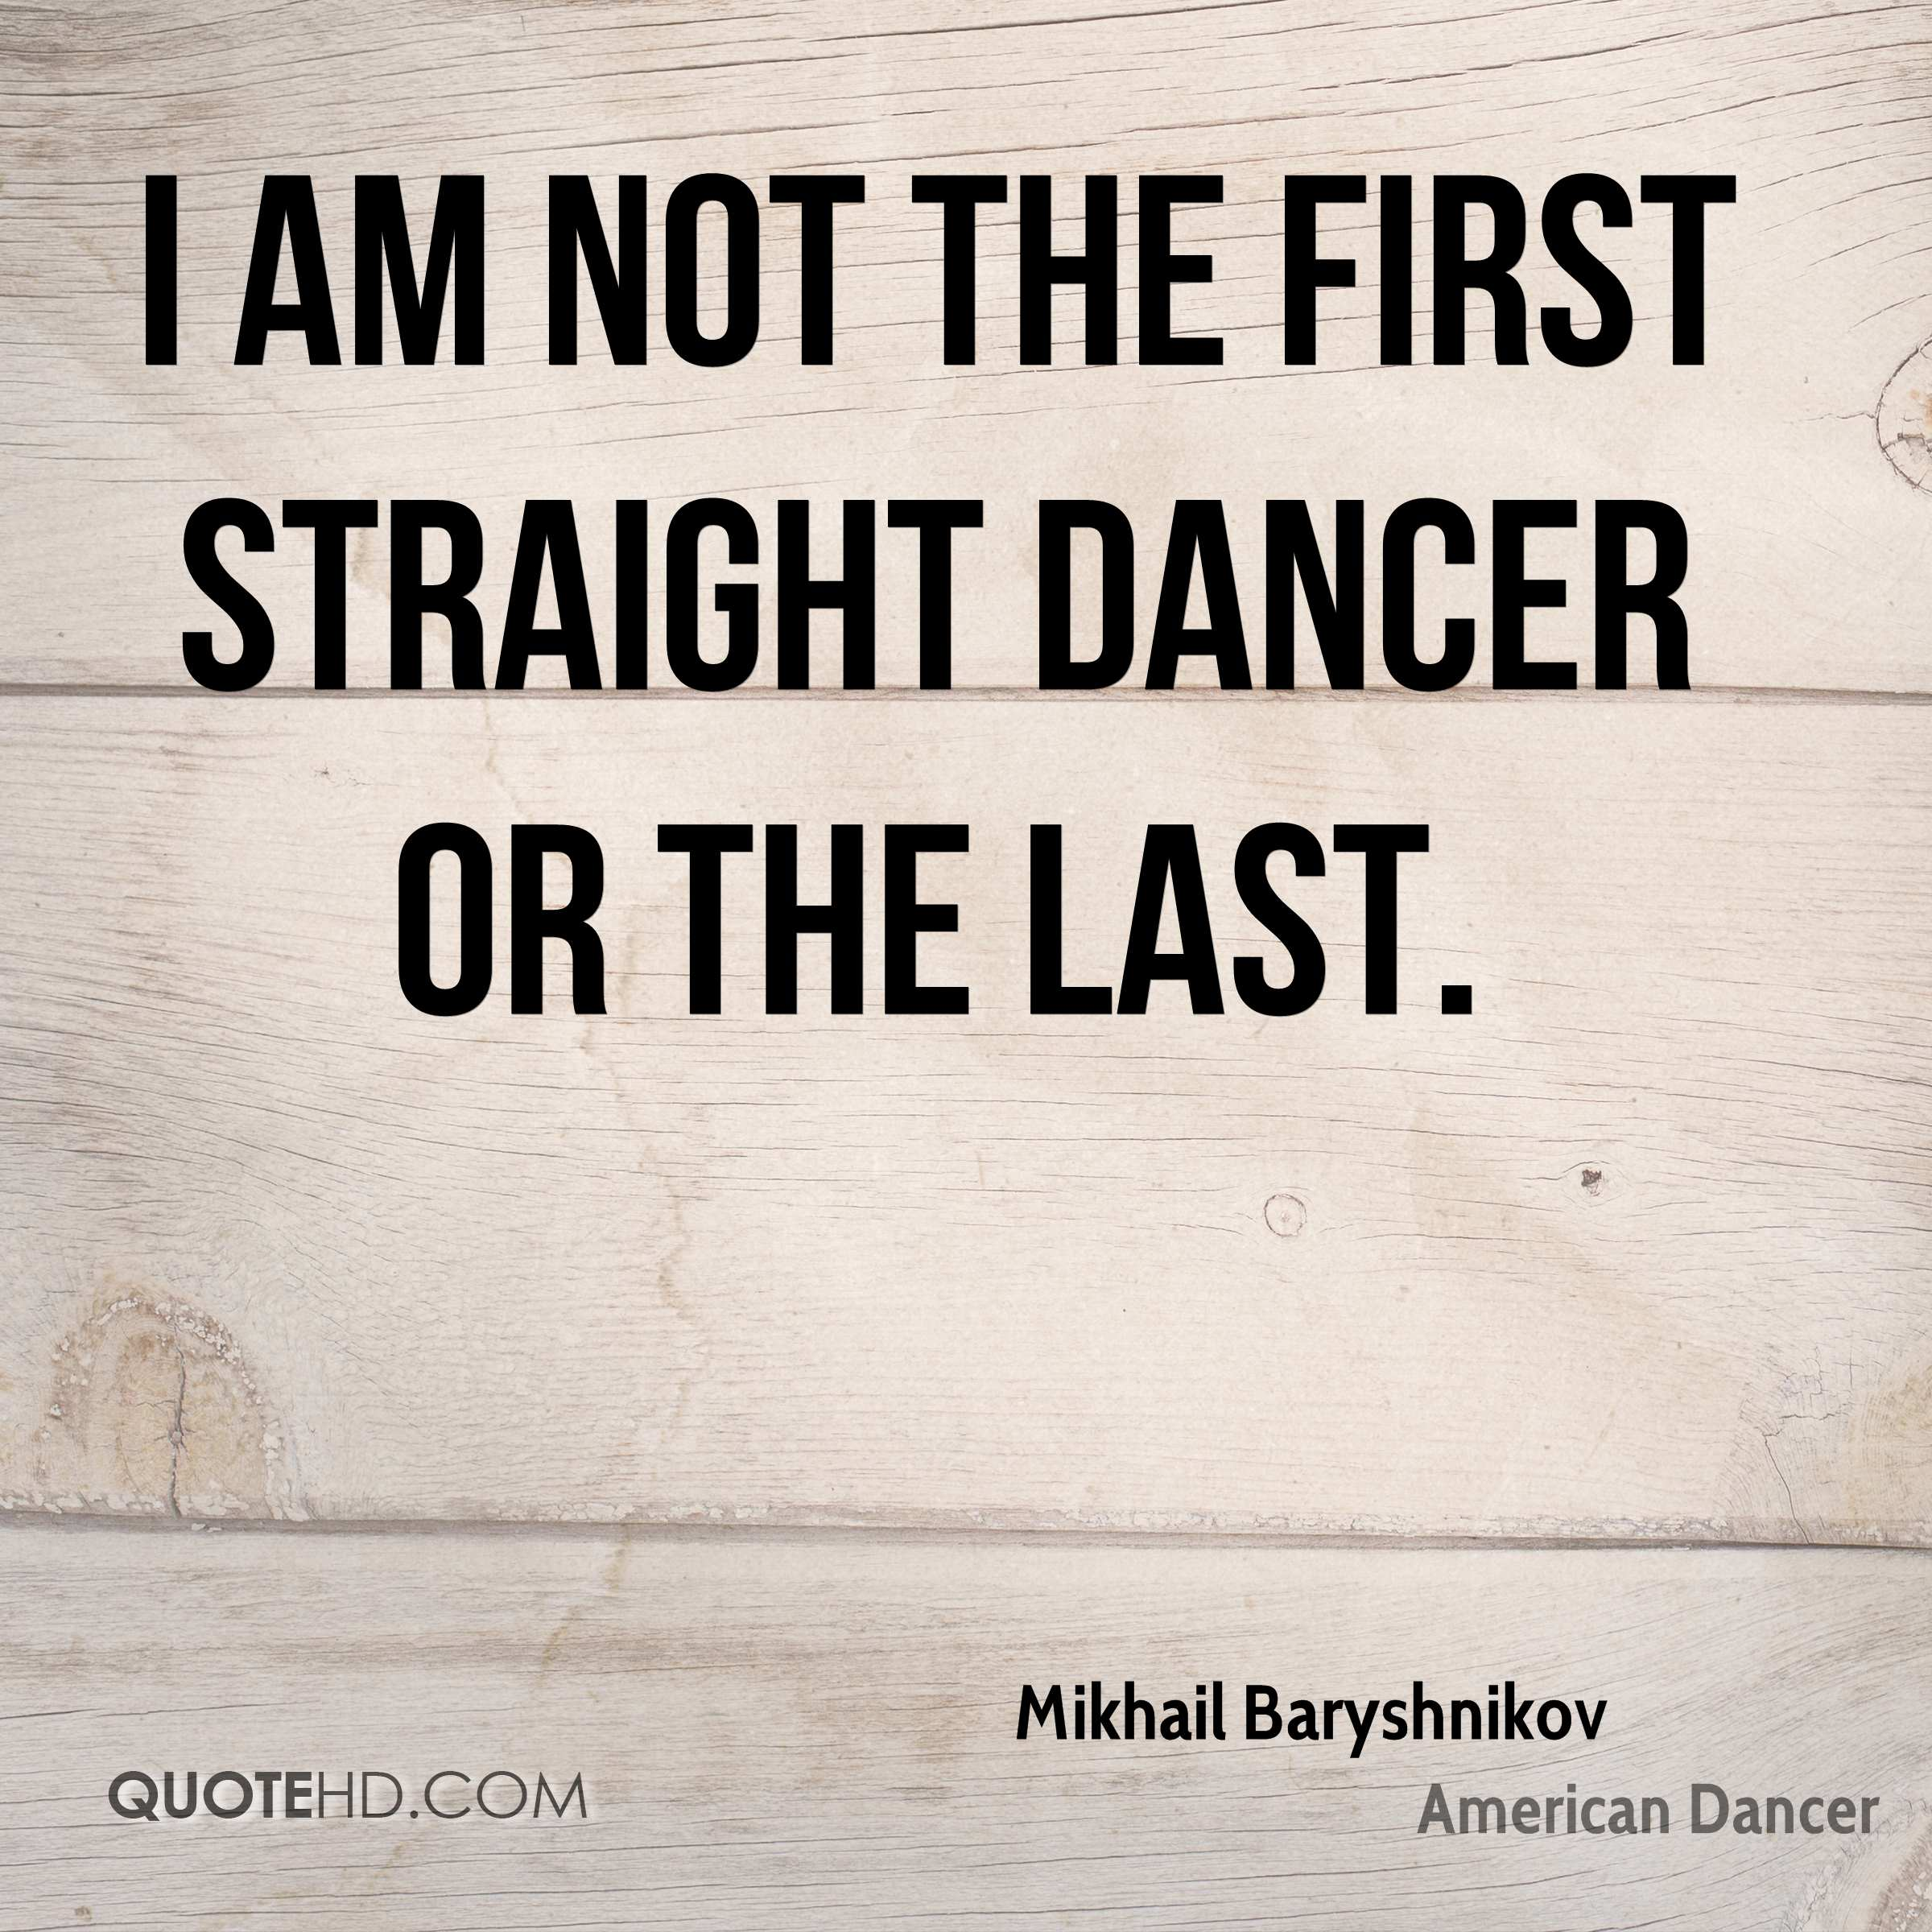 I am not the first straight dancer or the last.